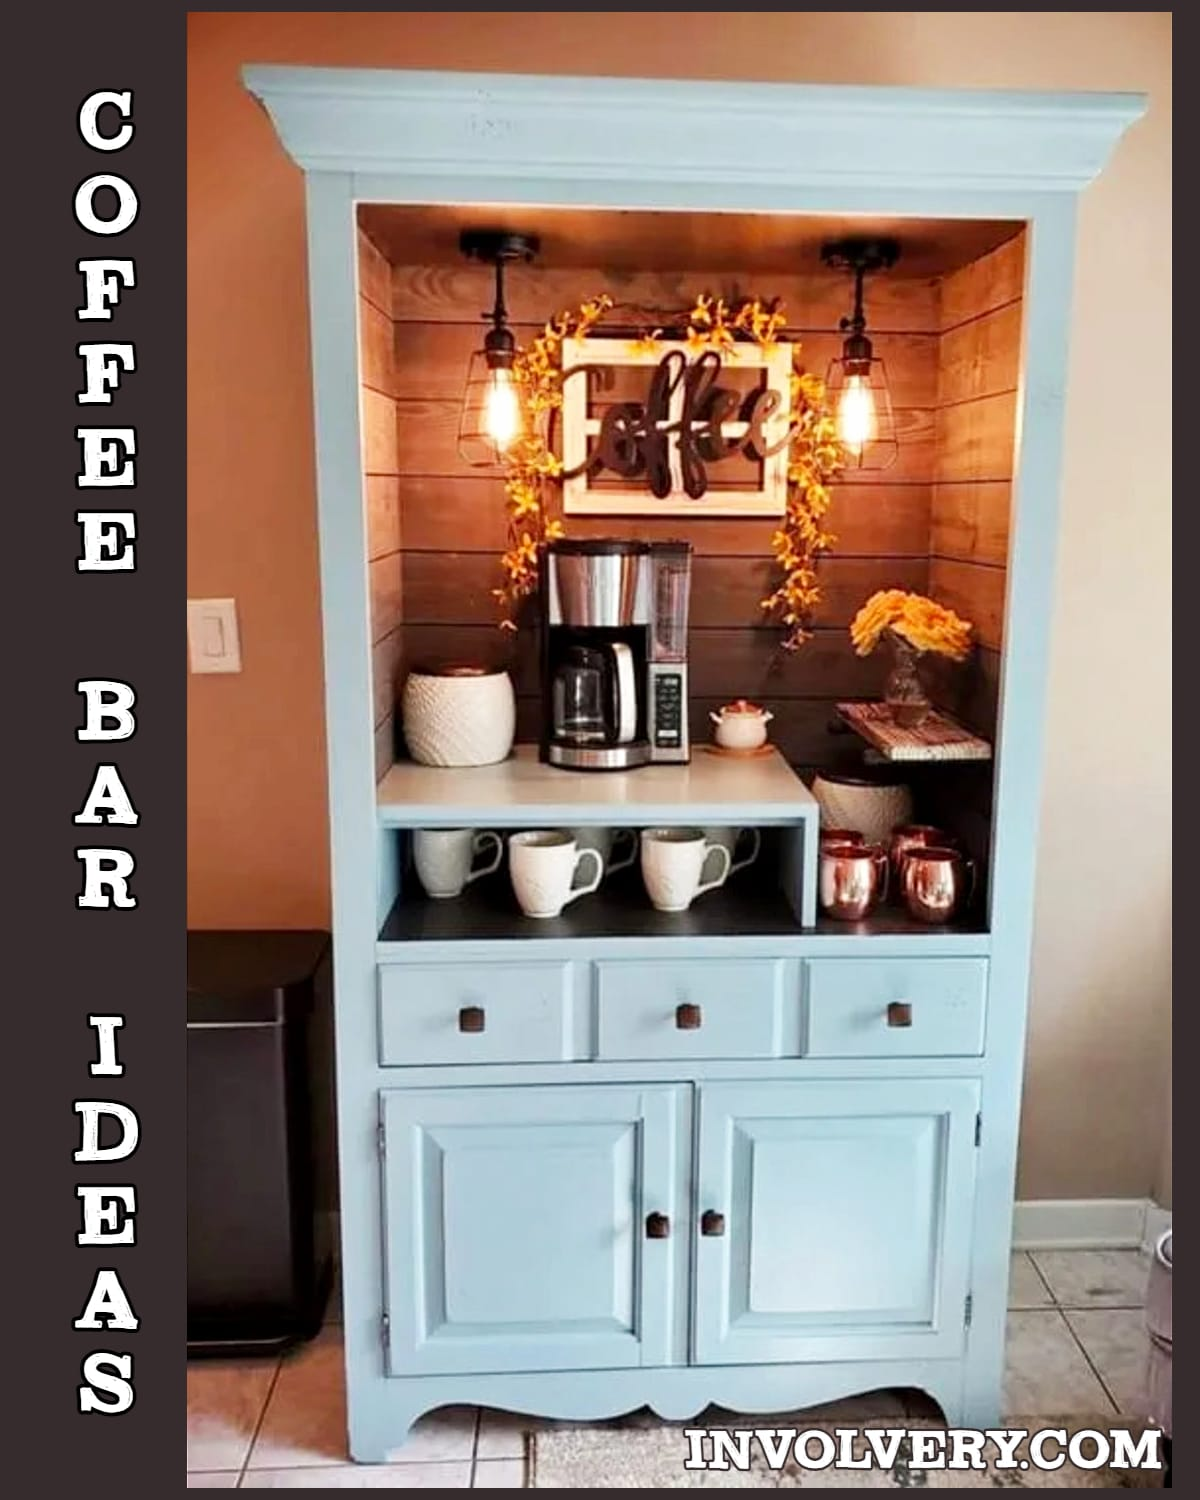 Coffee bar Ideas - Unique way to make a coffee bar for home - turn an old tall dresser or hutch into a repurposed / refurbished coffee bar for your kitchen or dining room - Gorgeous vintage rustic farmhouse look from an old chest cabinet